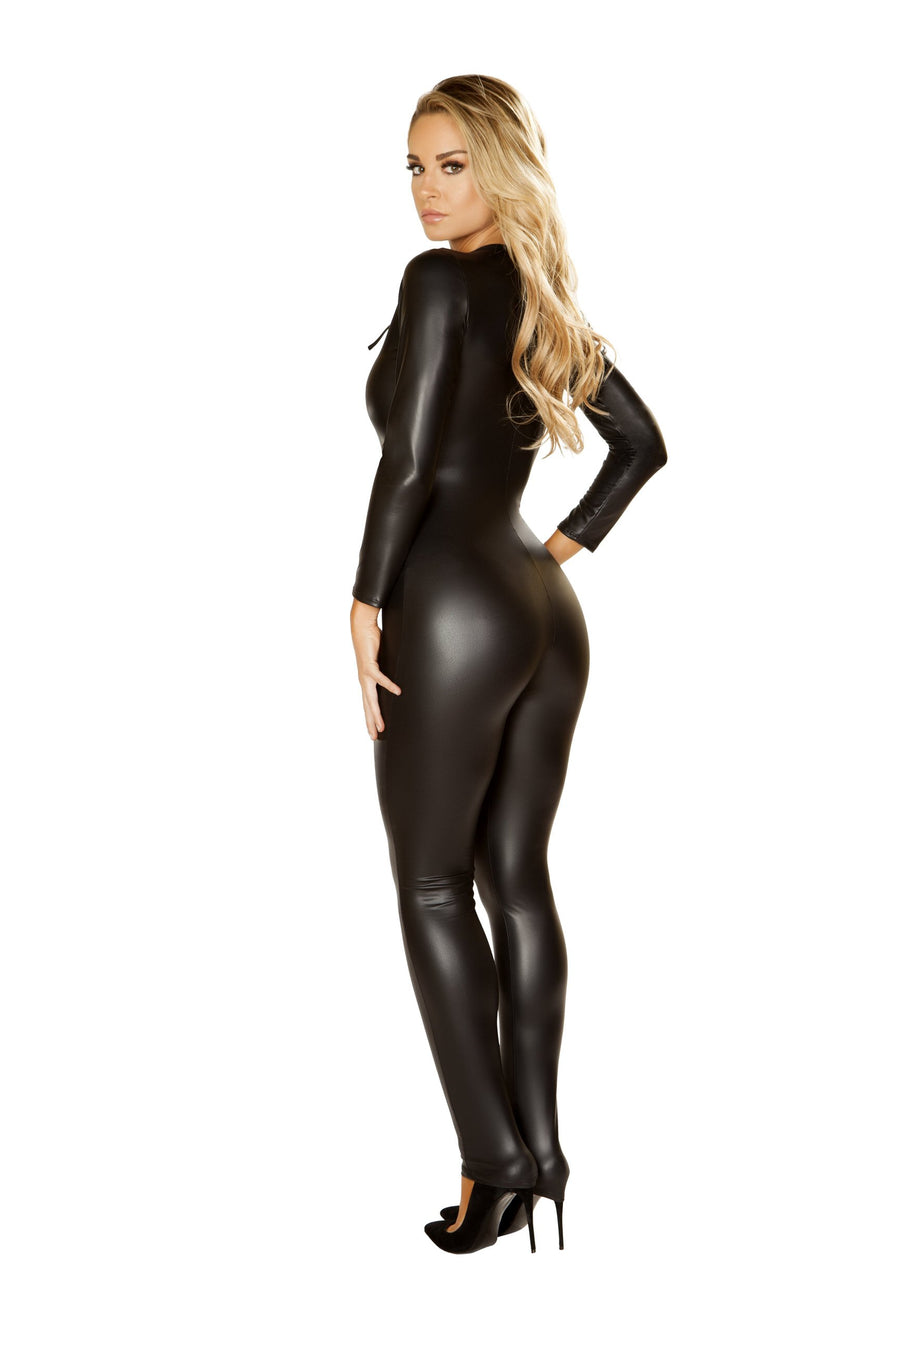 Multi Purpose Catsuit Costume - Rave Bodysuits & One Pieces, Roma - YourLamode